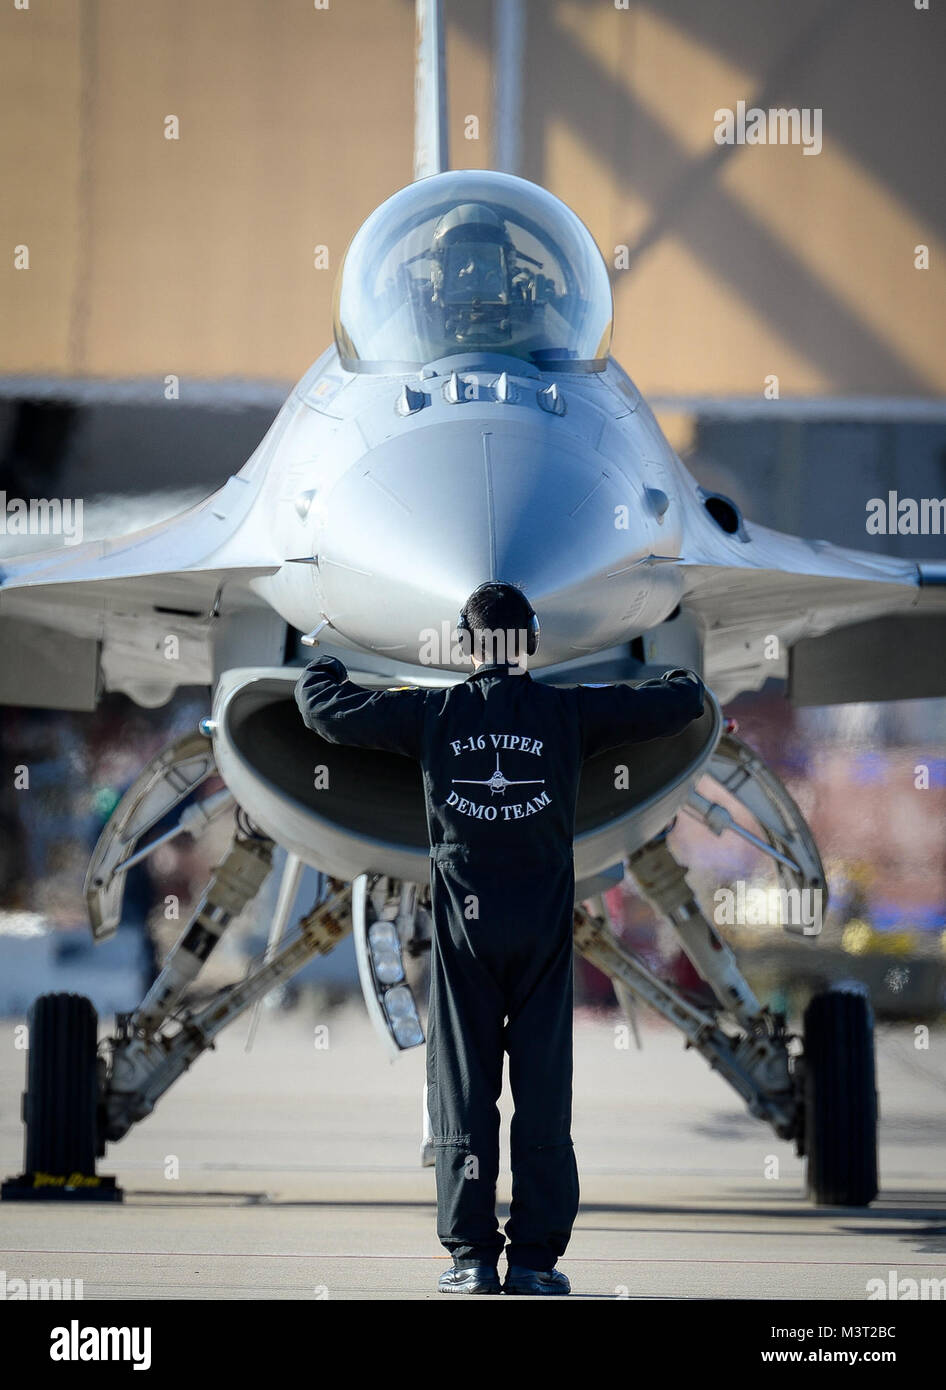 An F-16 Fighting Falcon is marshaled into position at Davis-Monthan Air Force Base on March 4, 2016. The F-16 was Stock Photo